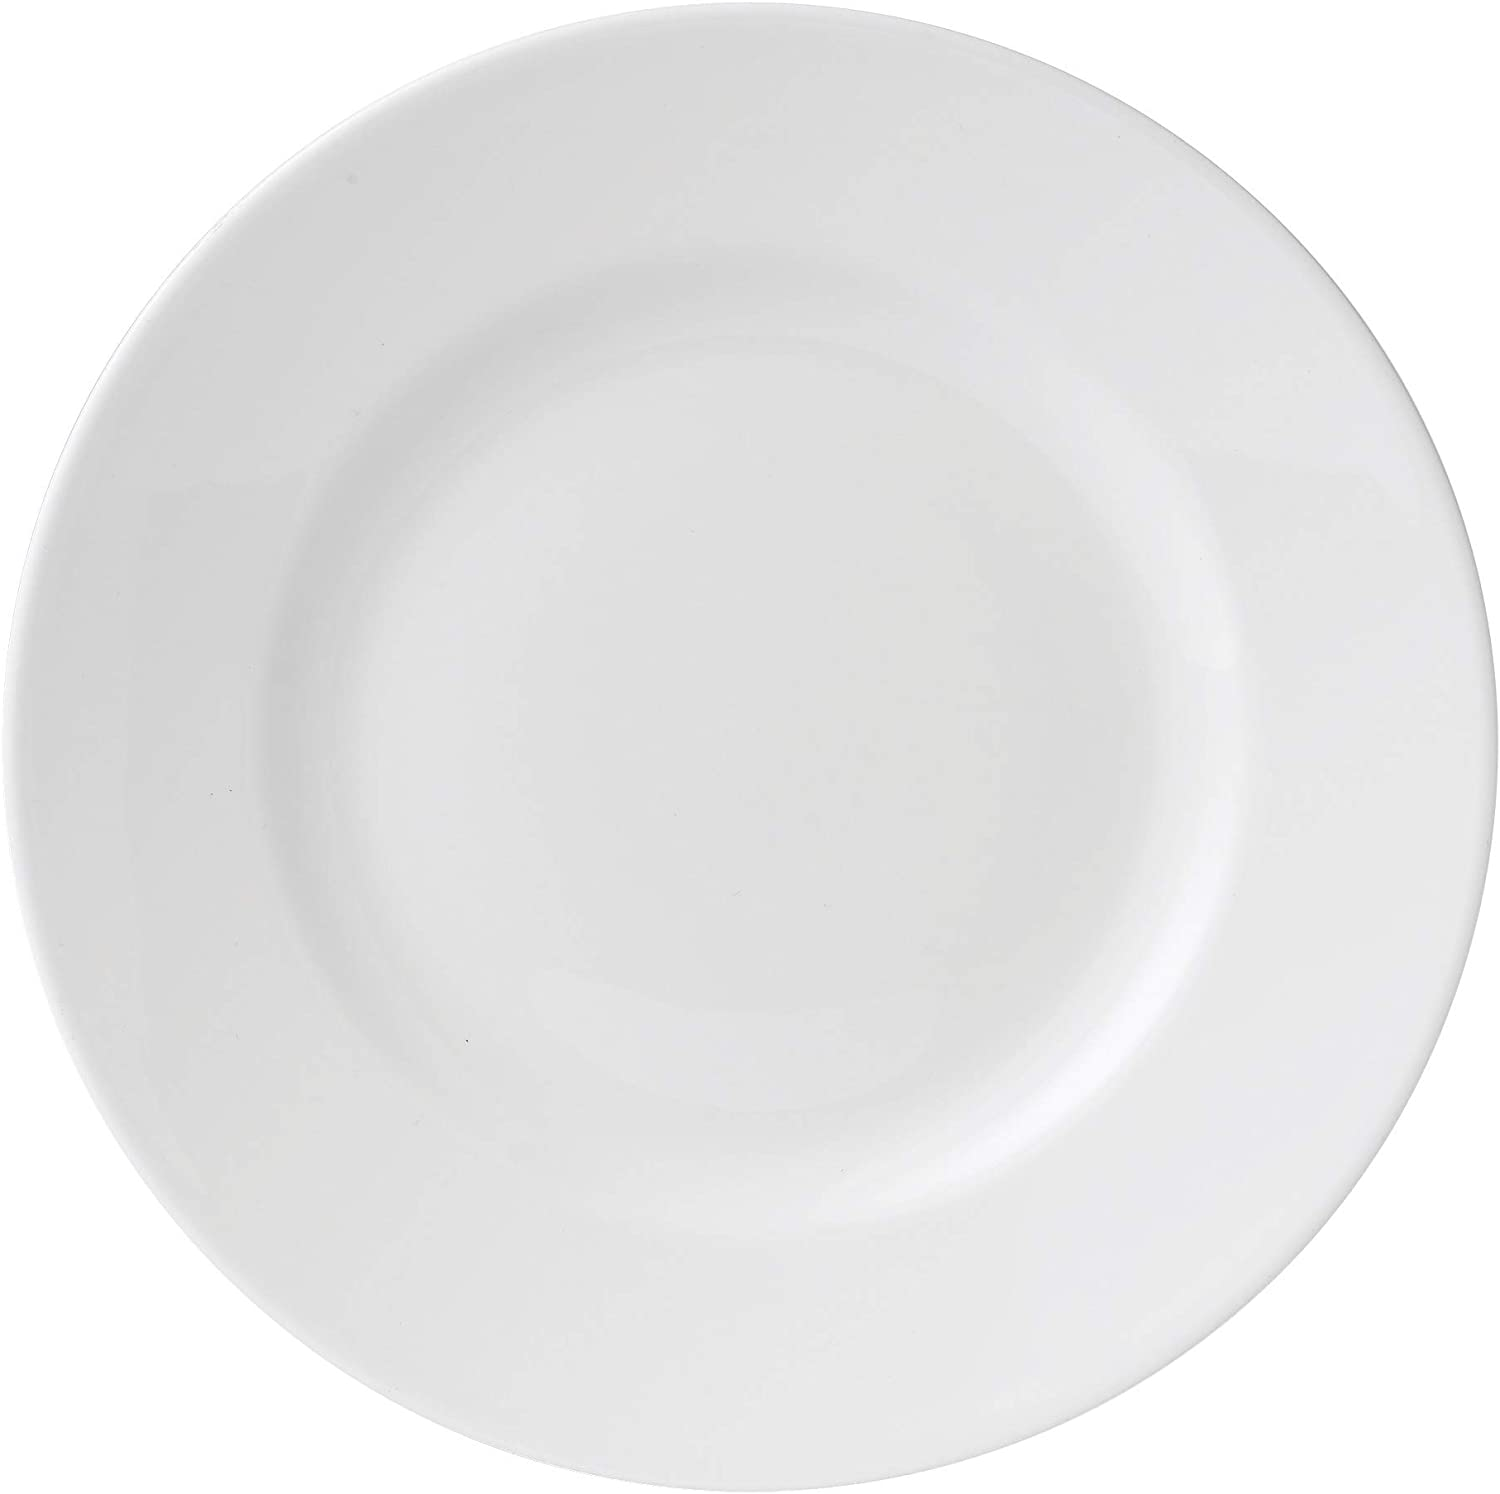 Wedgwood Bombing new work White Limited price 8-Inch Plate Salad